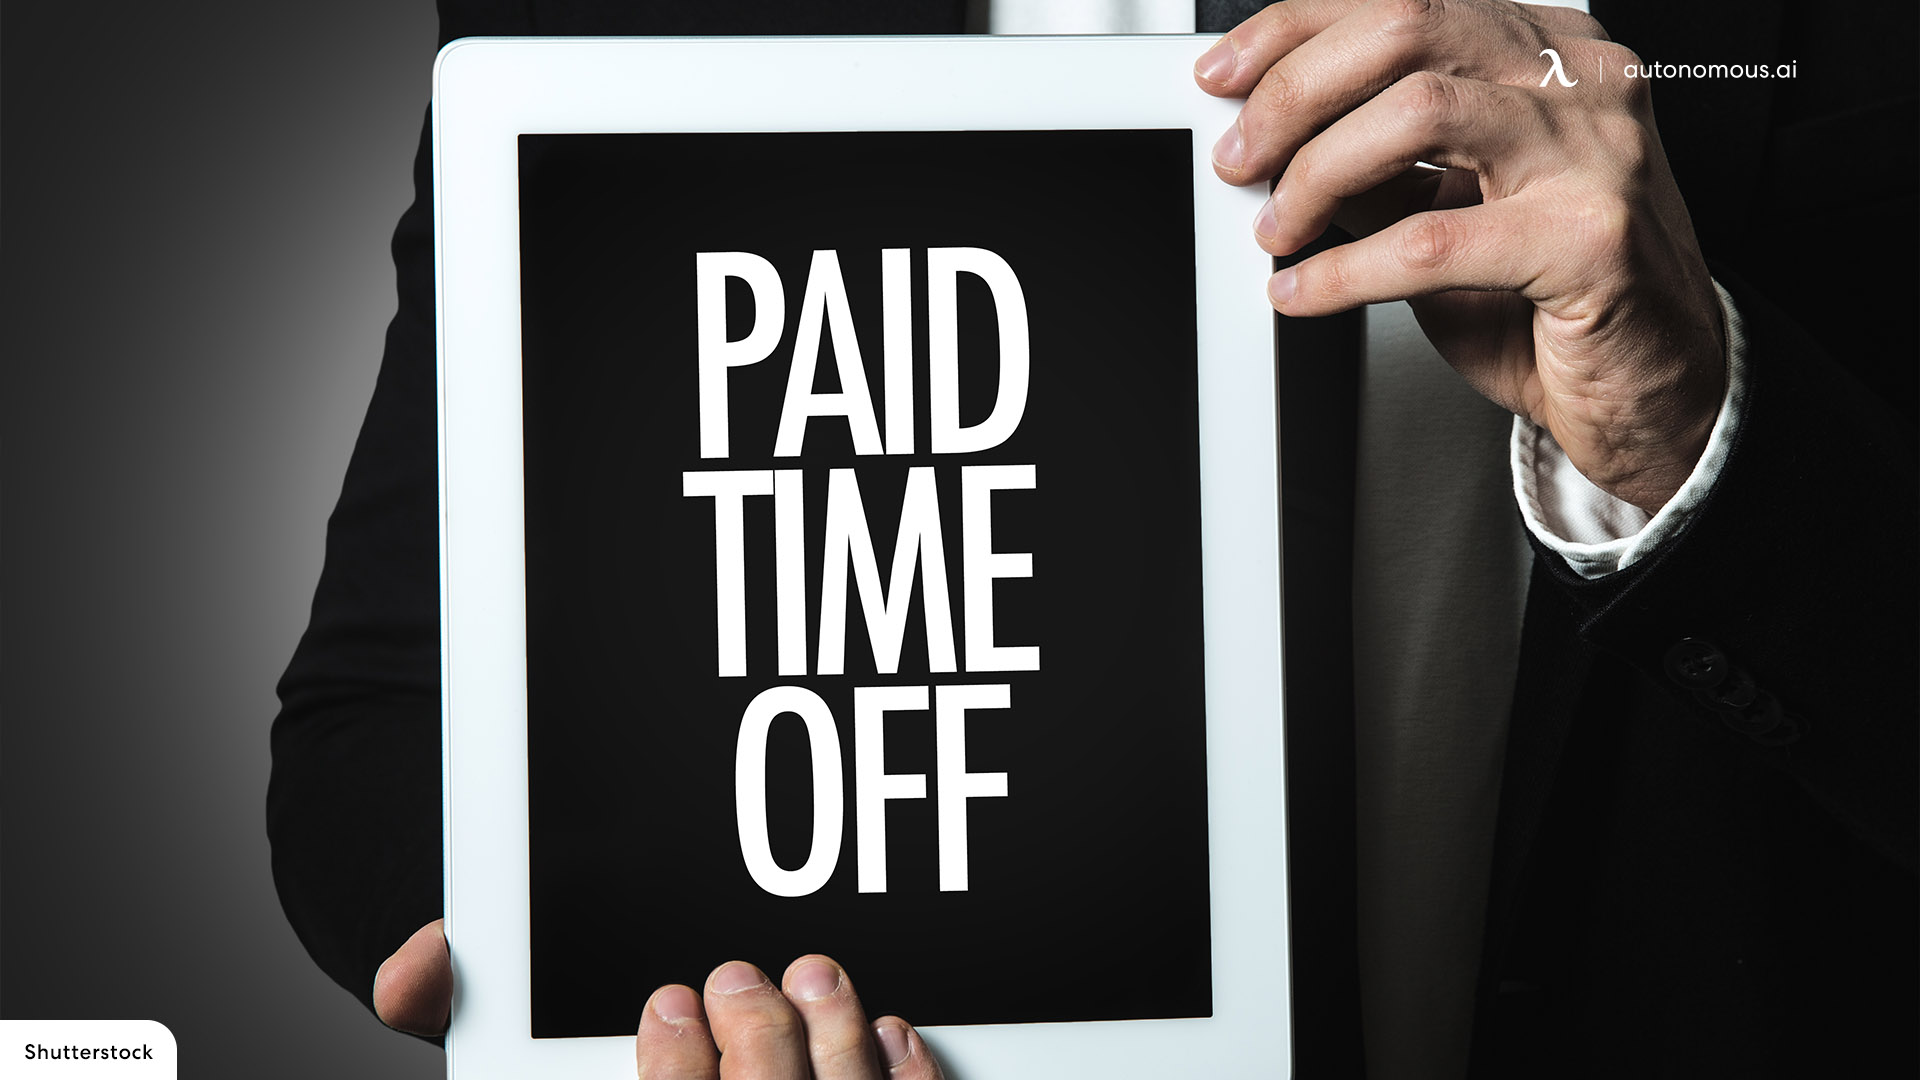 Paid time off in employee benefits